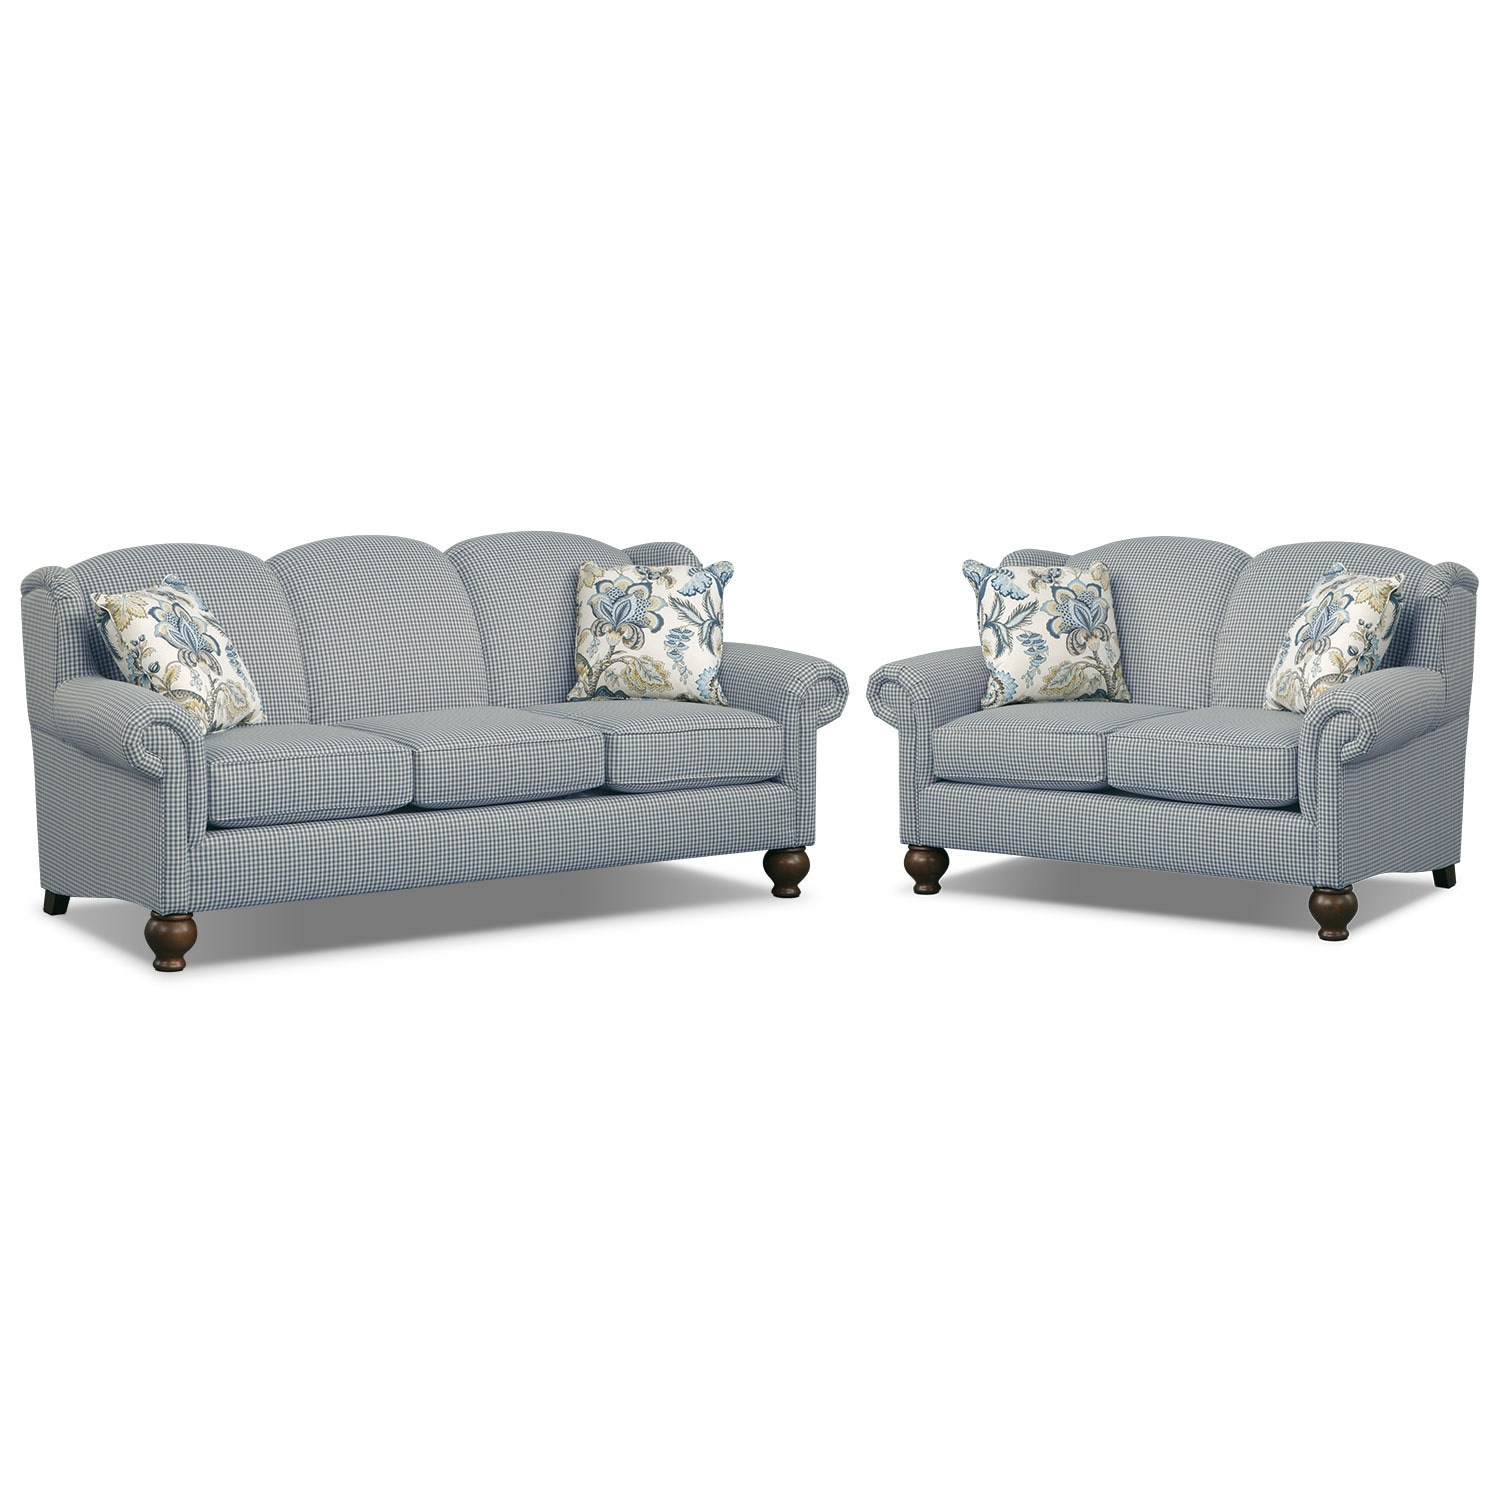 Living Room Furniture - Charlotte III 2 Pc. Living Room